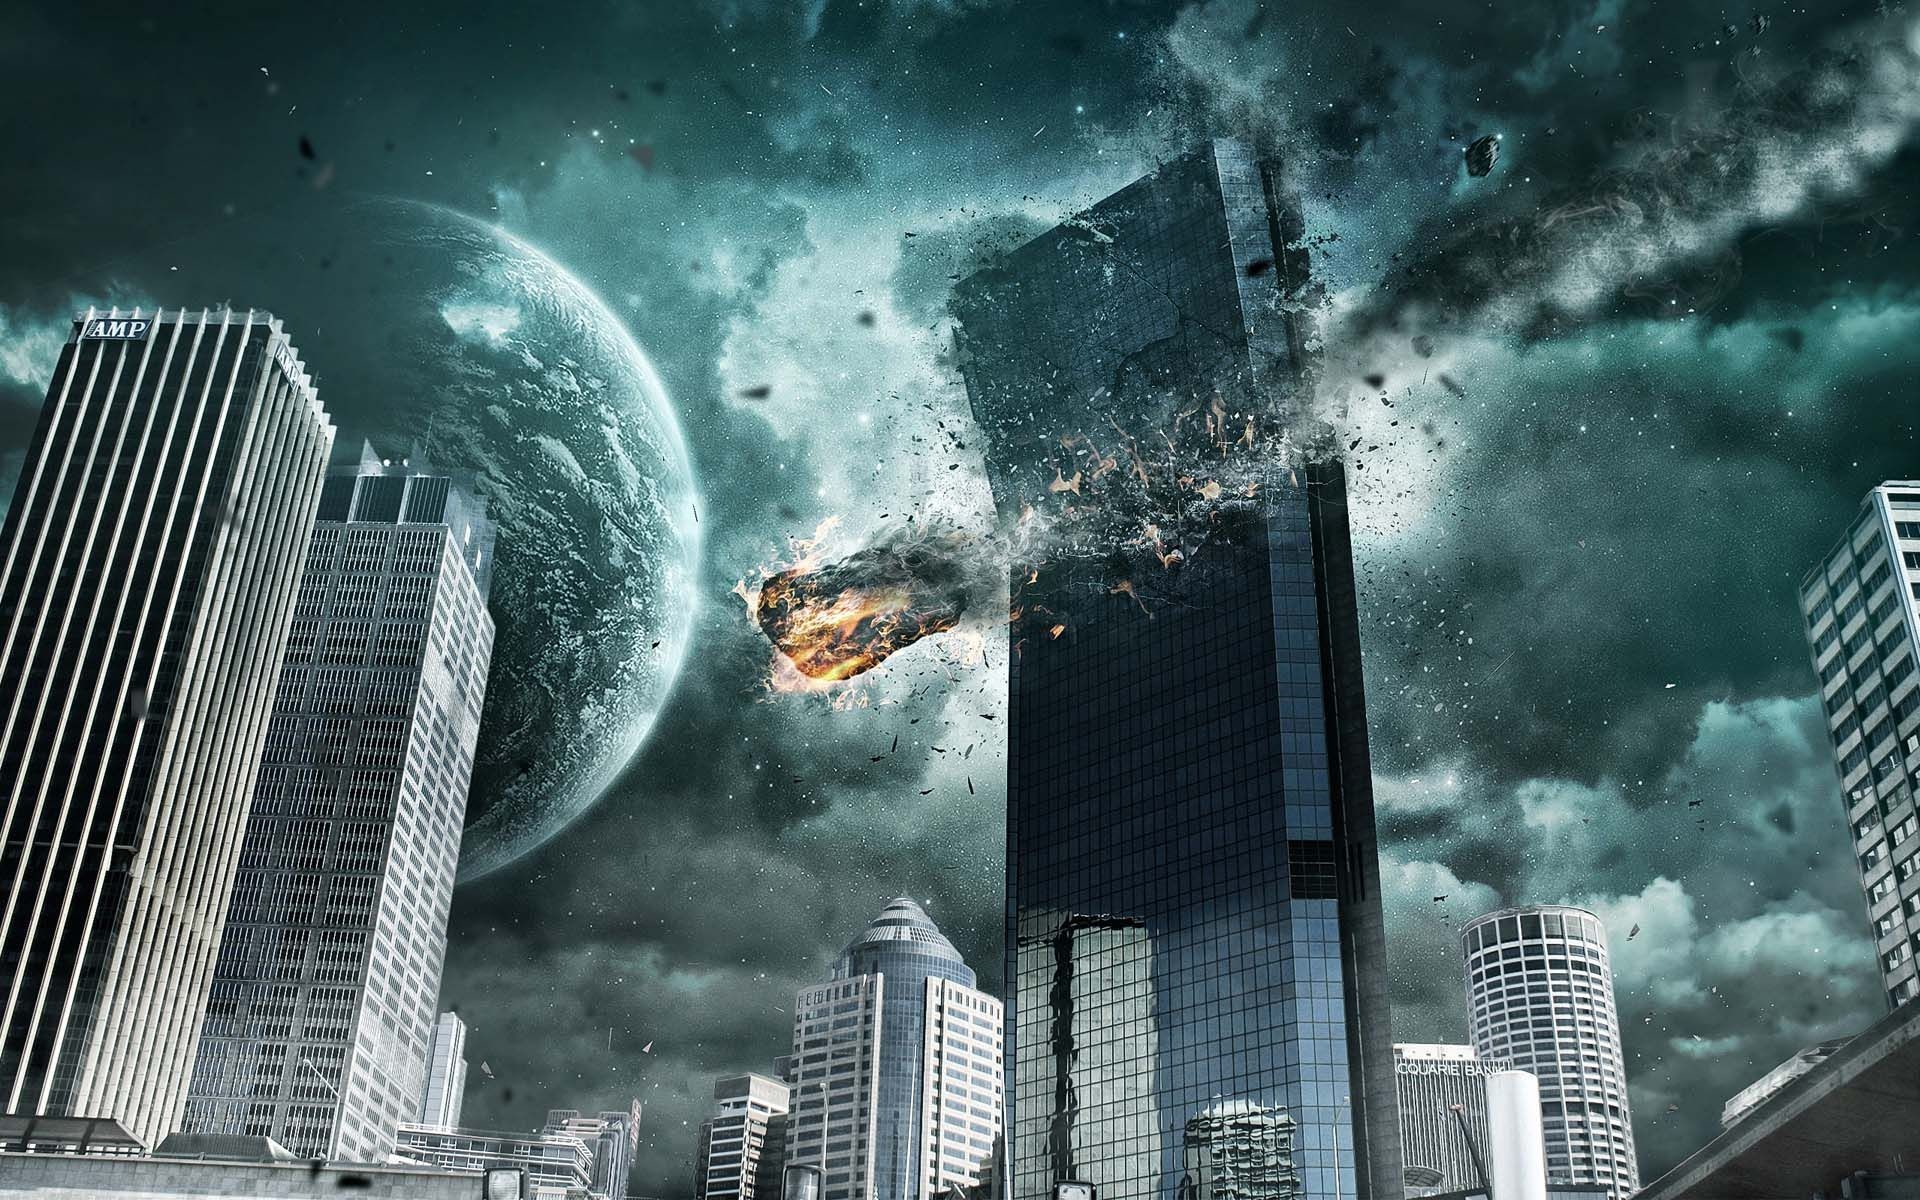 City Destroyed By Aliens 4k ultra hd backgrounds wallpaper